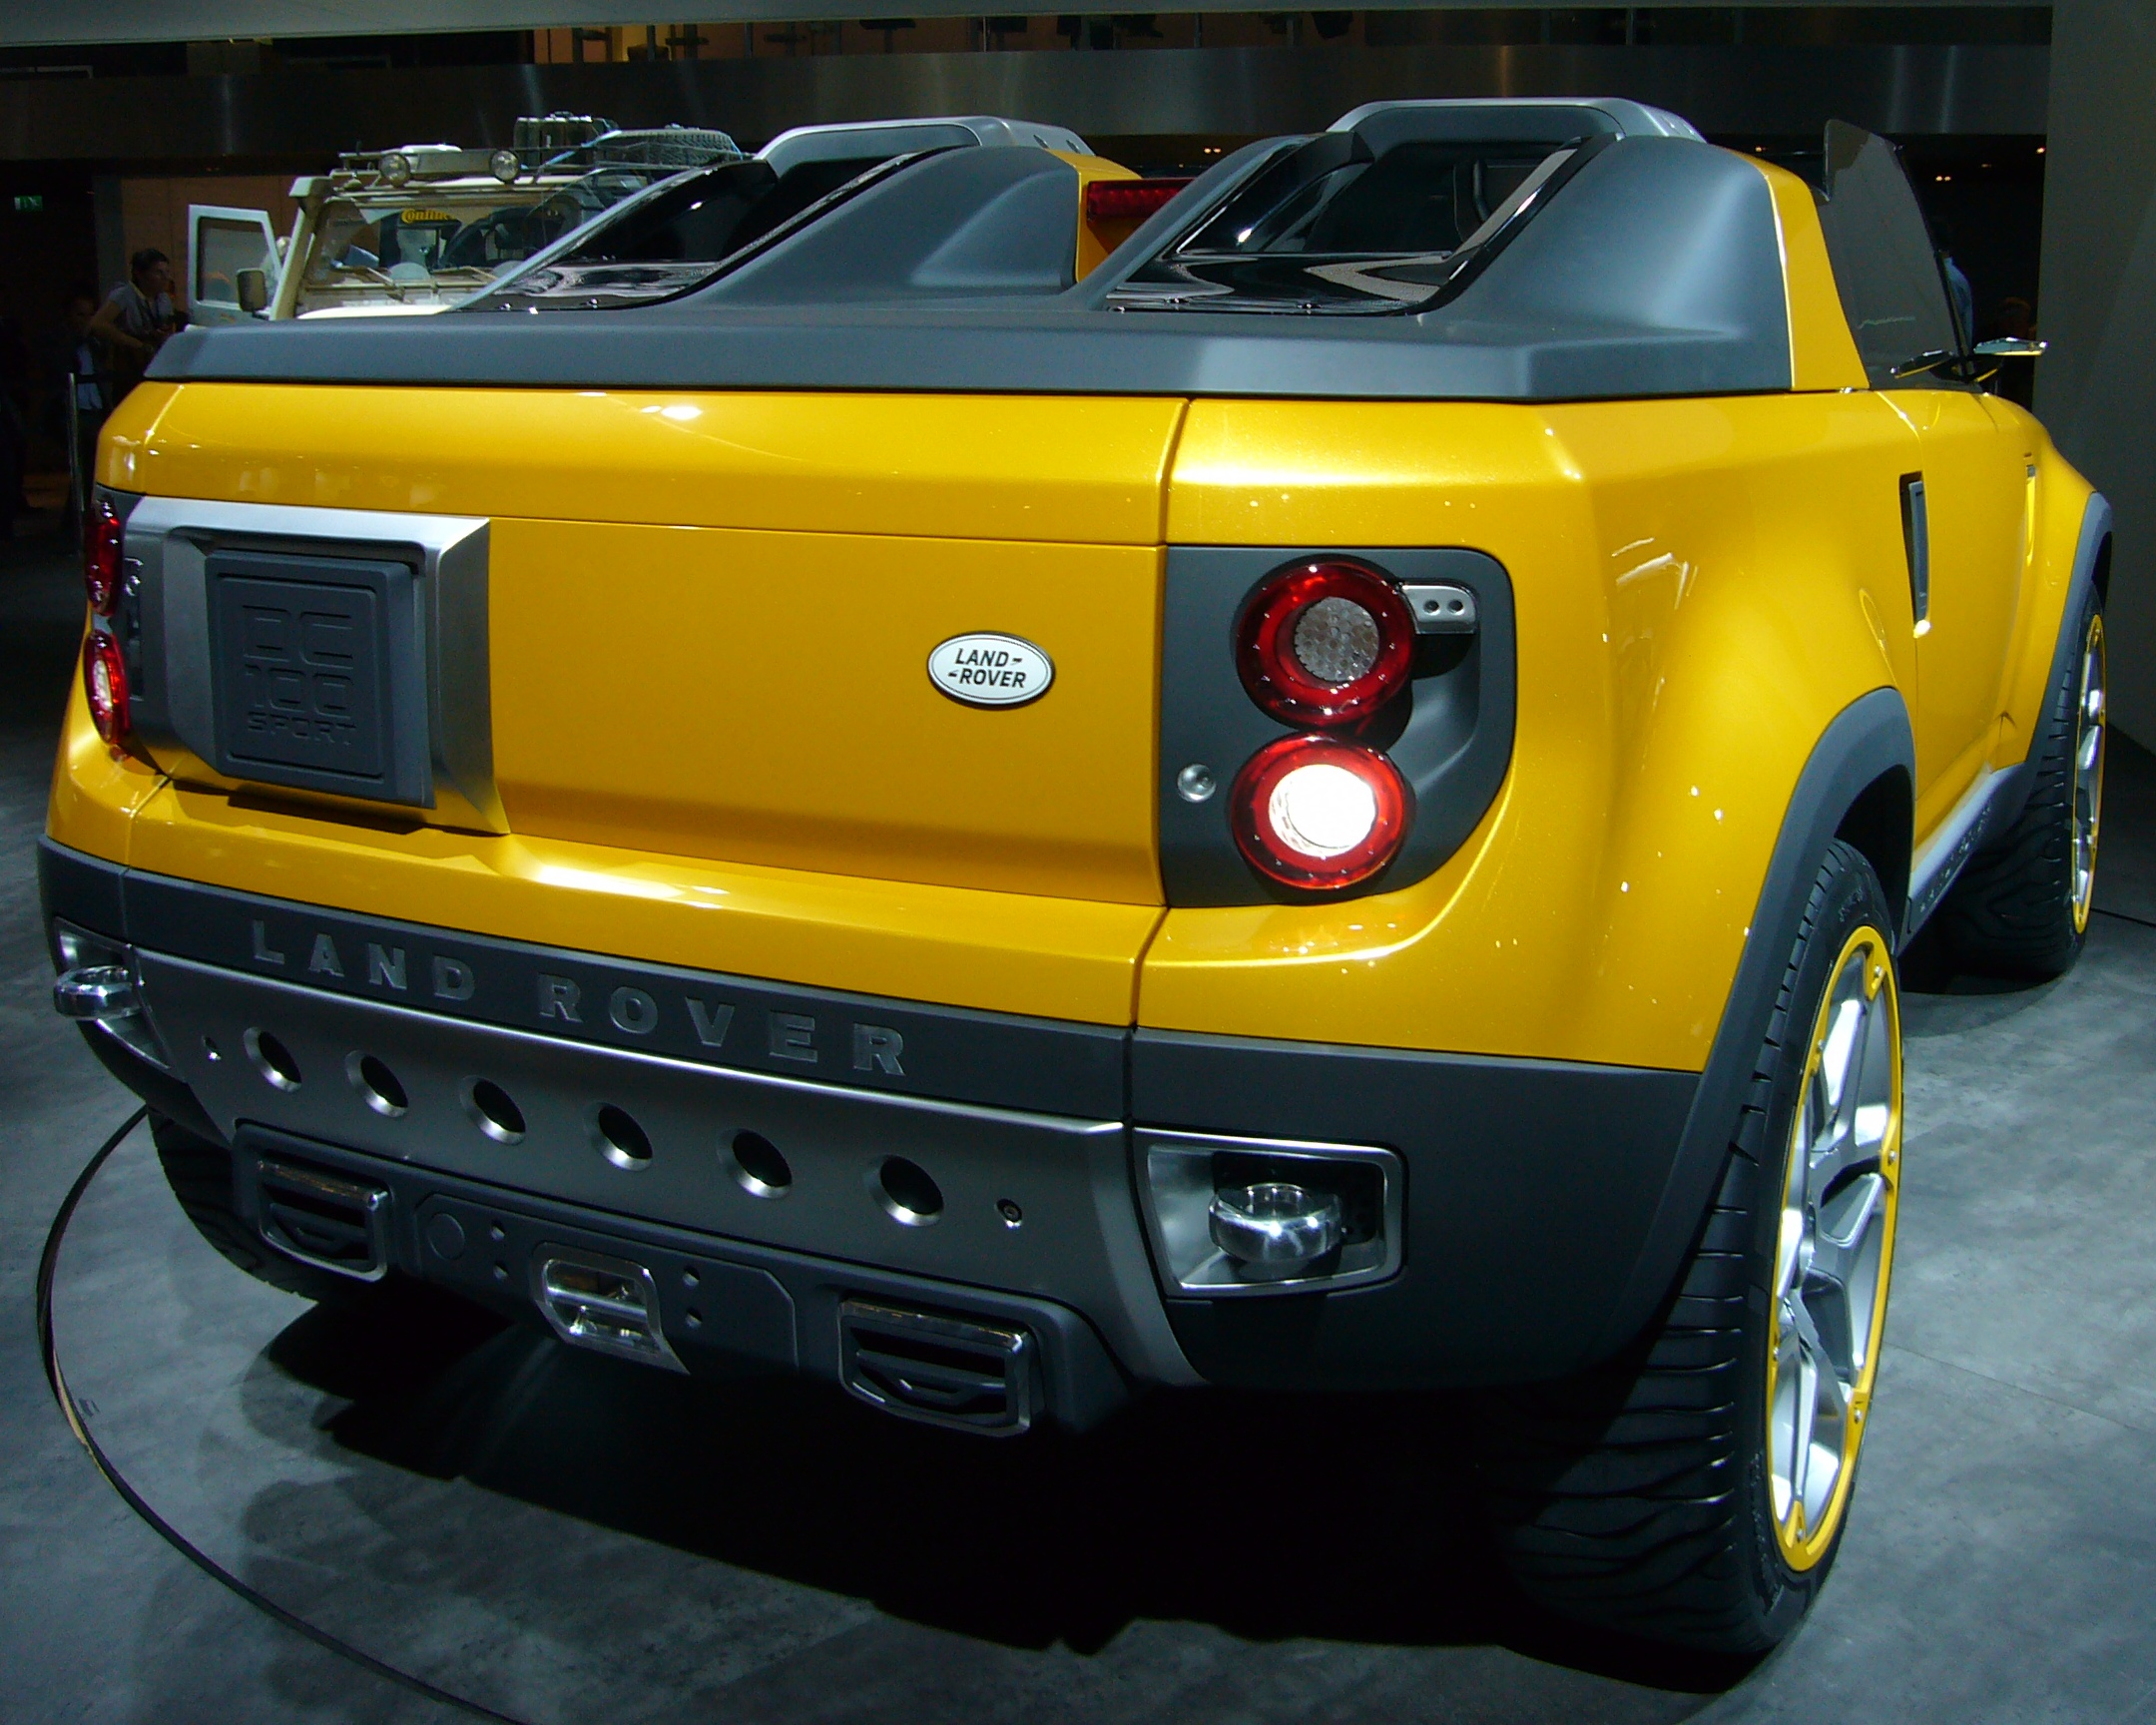 Land Rover DC100 - Wikipedia, the free encyclopedia - HD Wallpapers